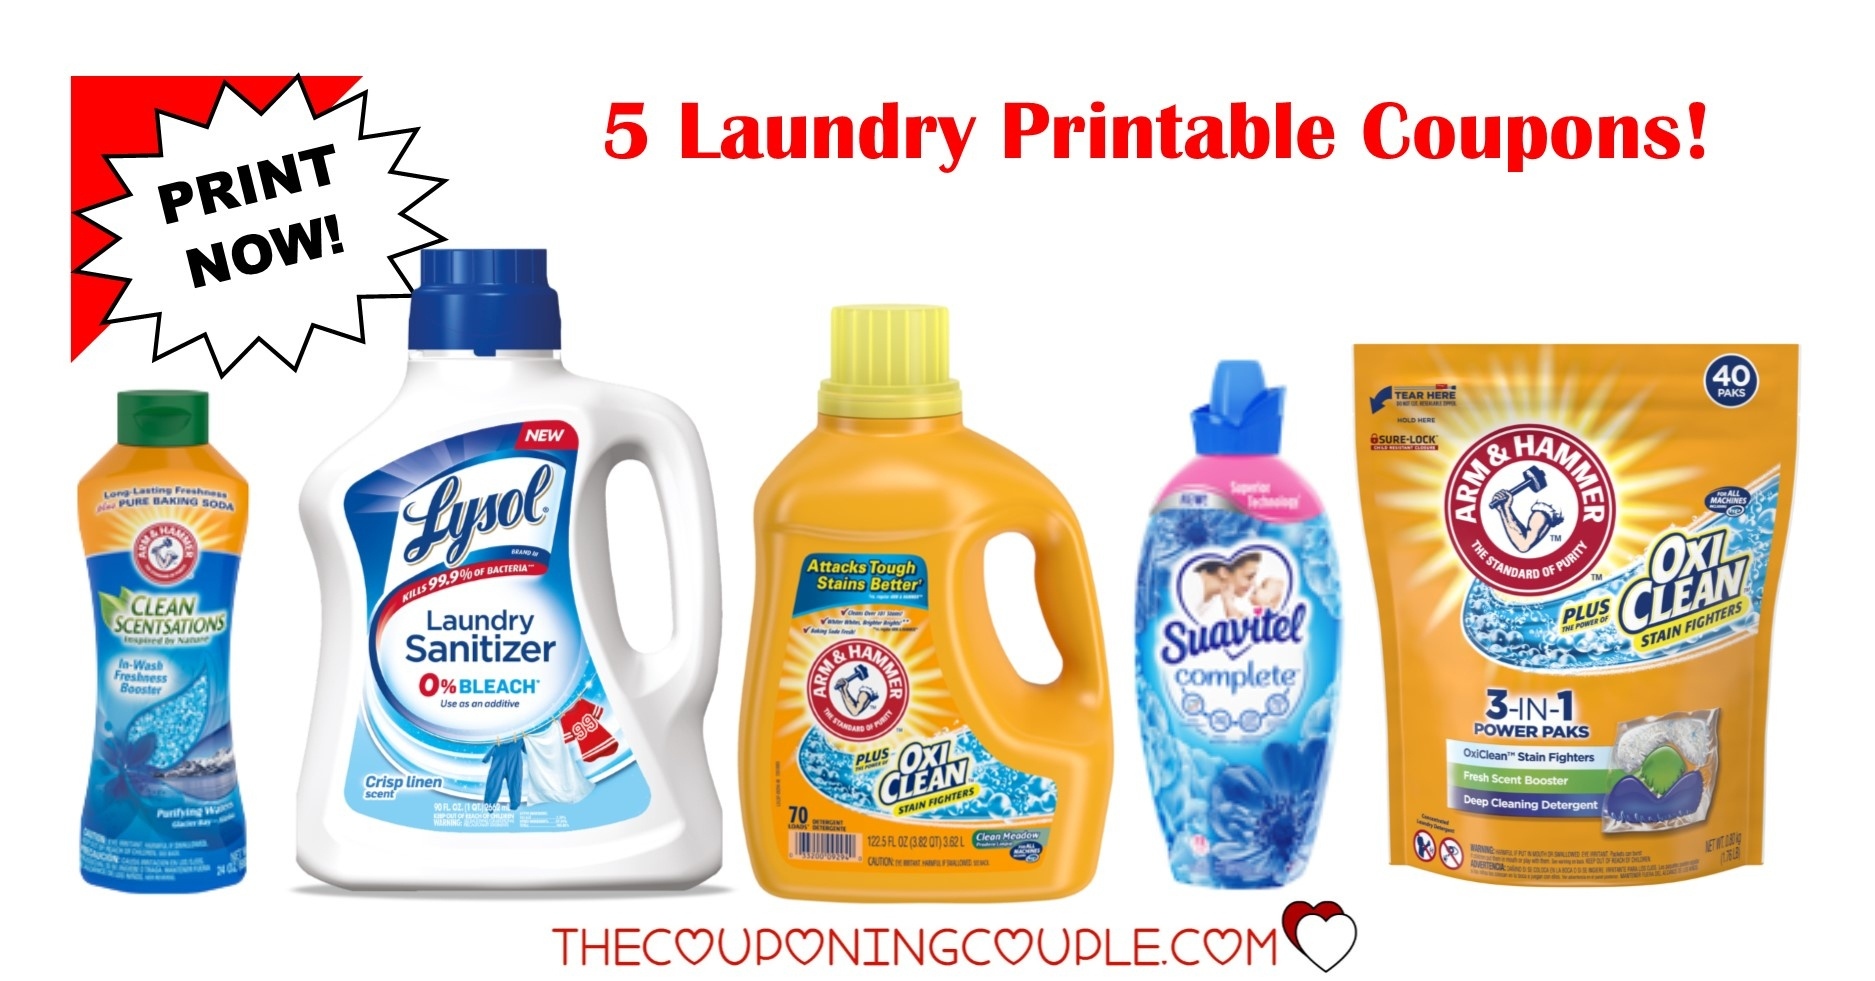 5 Laundry Detergent Printable Coupons ~ $5.50 In Savings!!! - Free All Detergent Printable Coupons